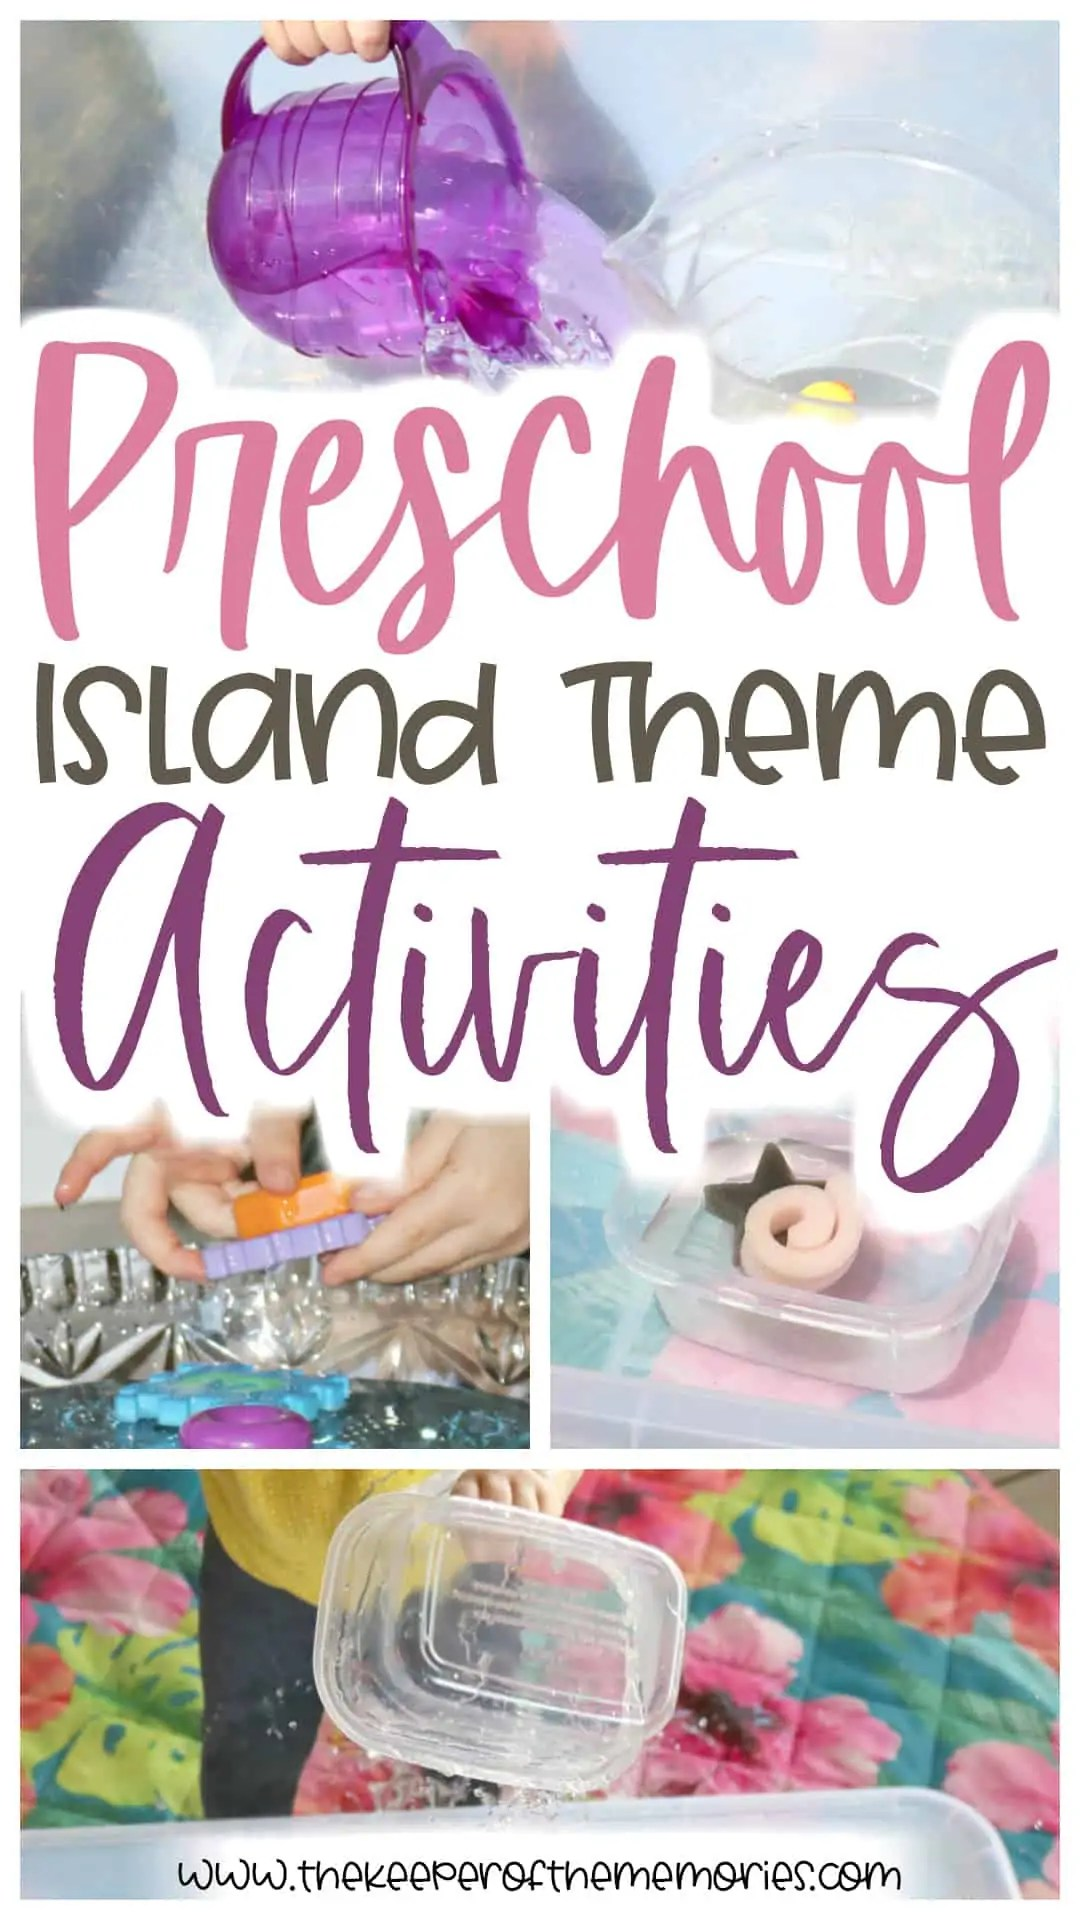 Preschool Island Theme Activities For Little Kids